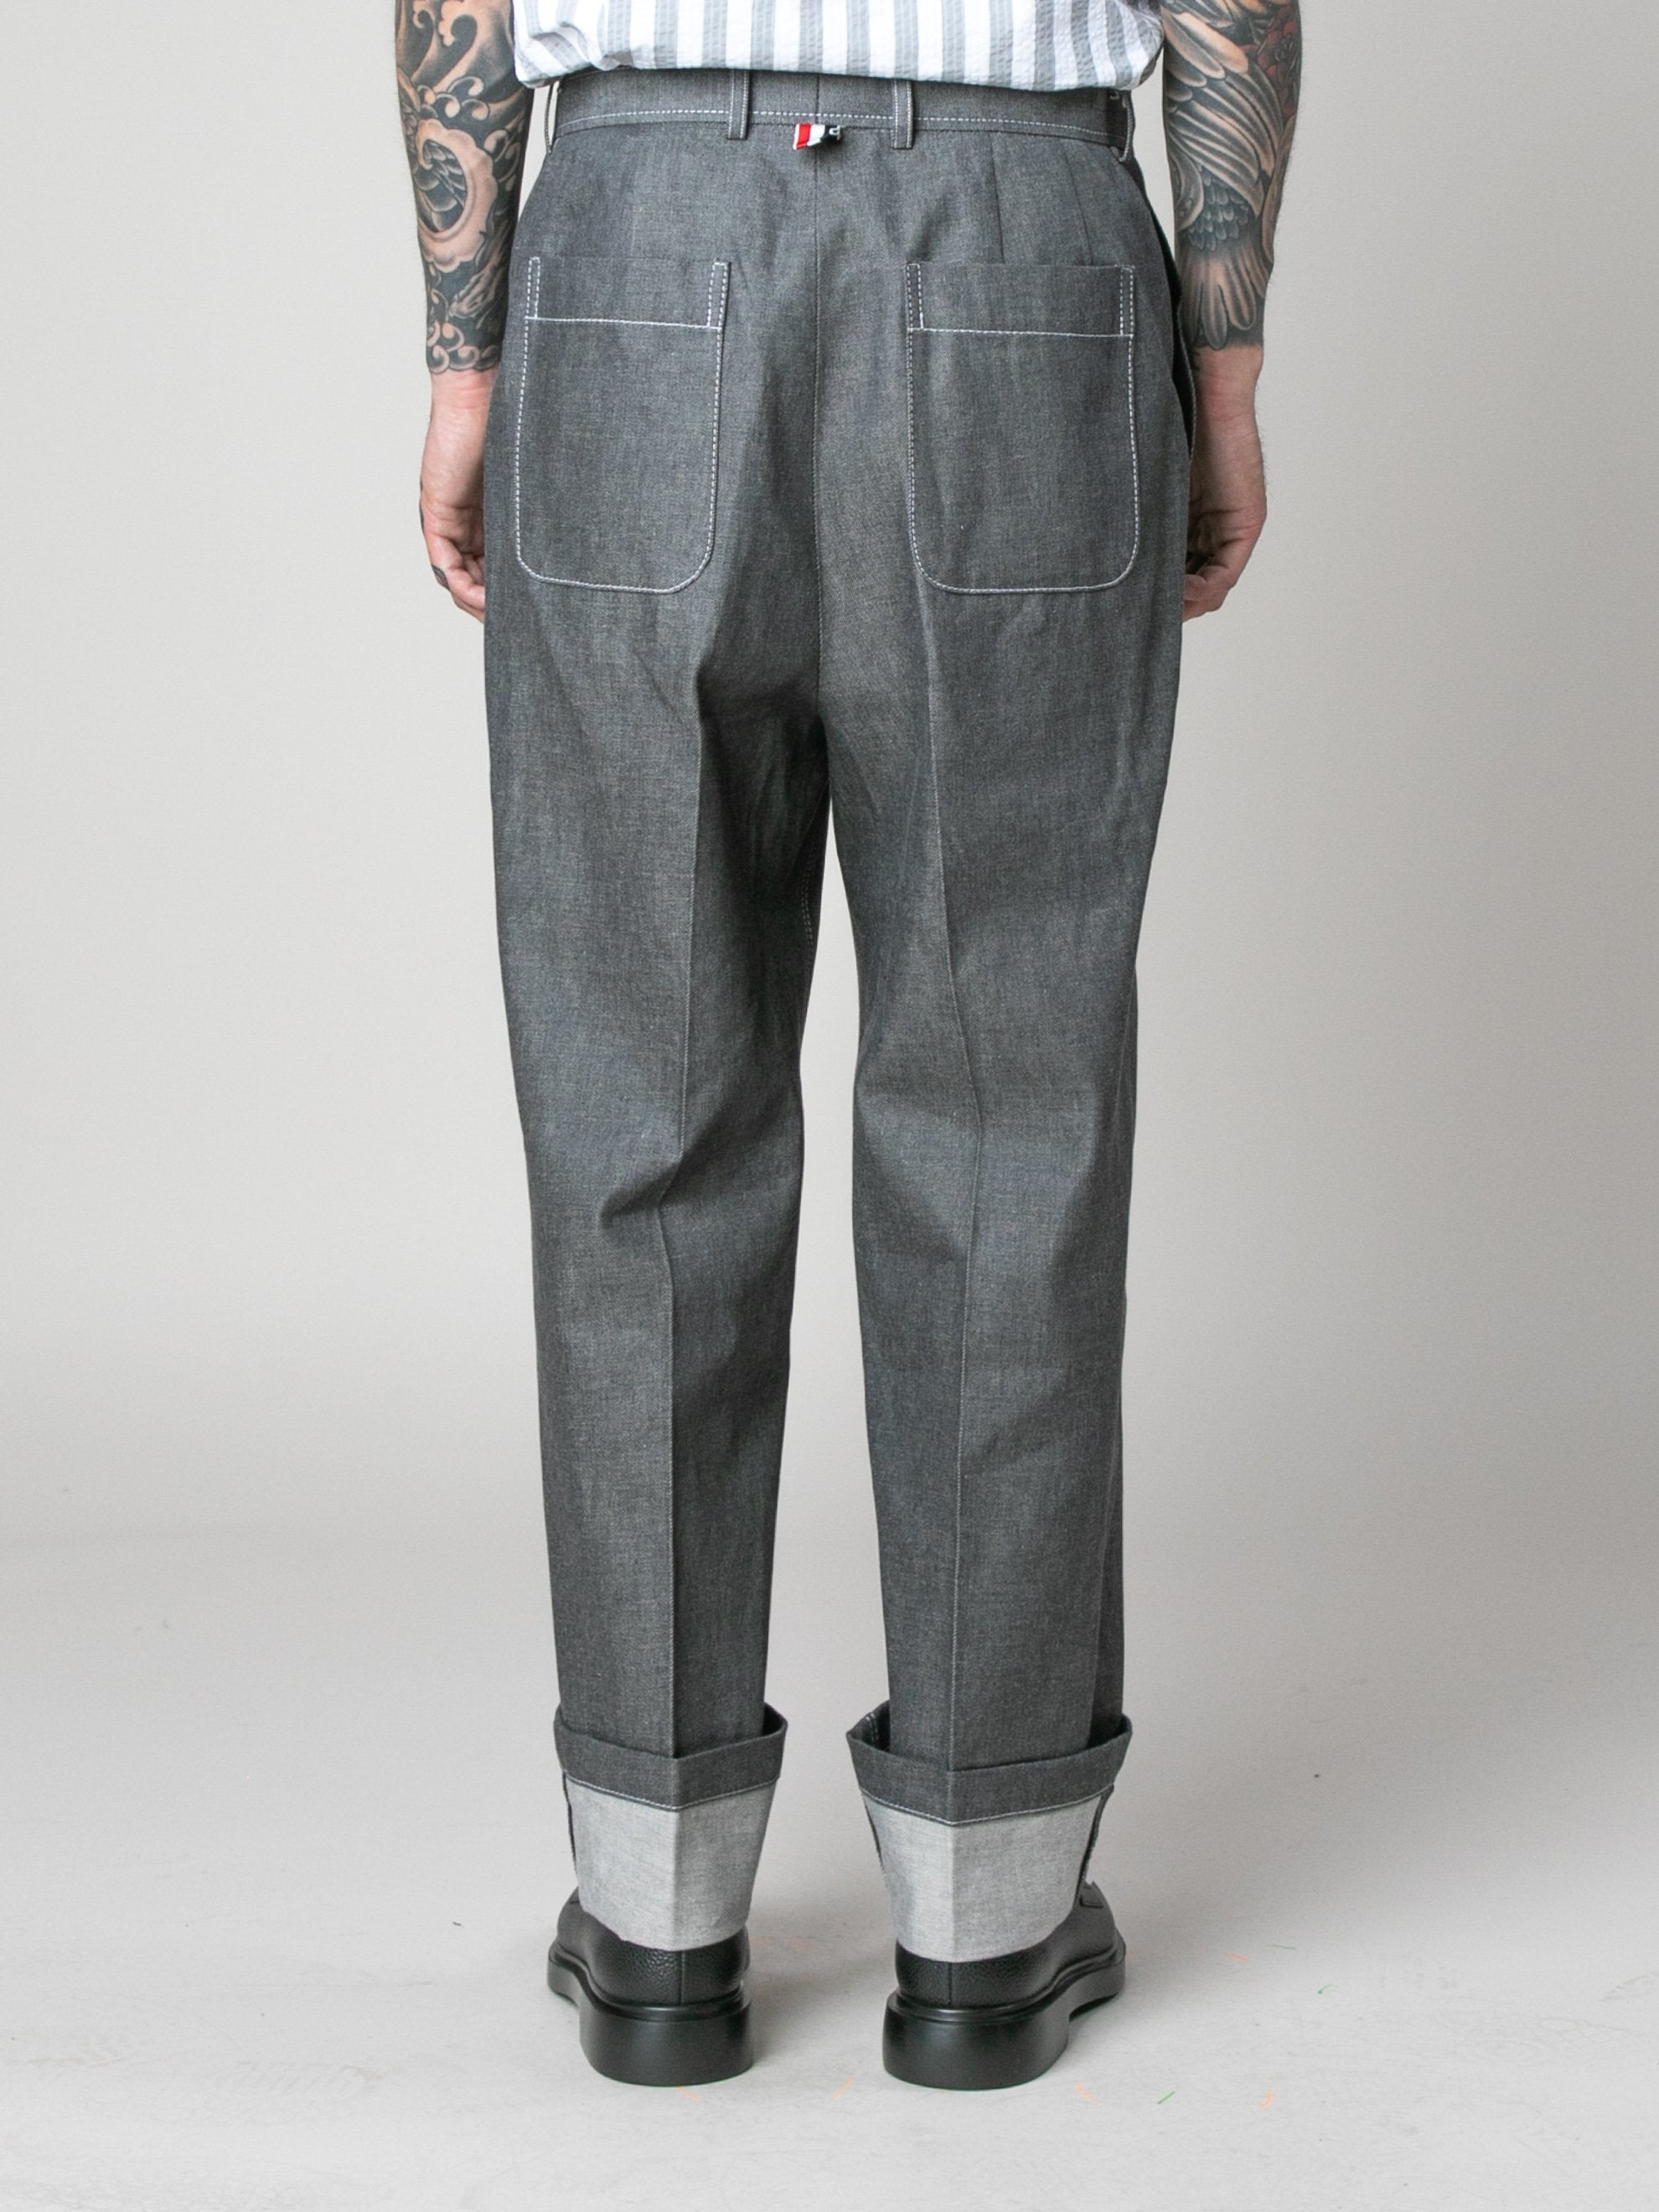 Med Grey Square Patch Pocket Fold Up Straight Leg Trouser In Denim 6